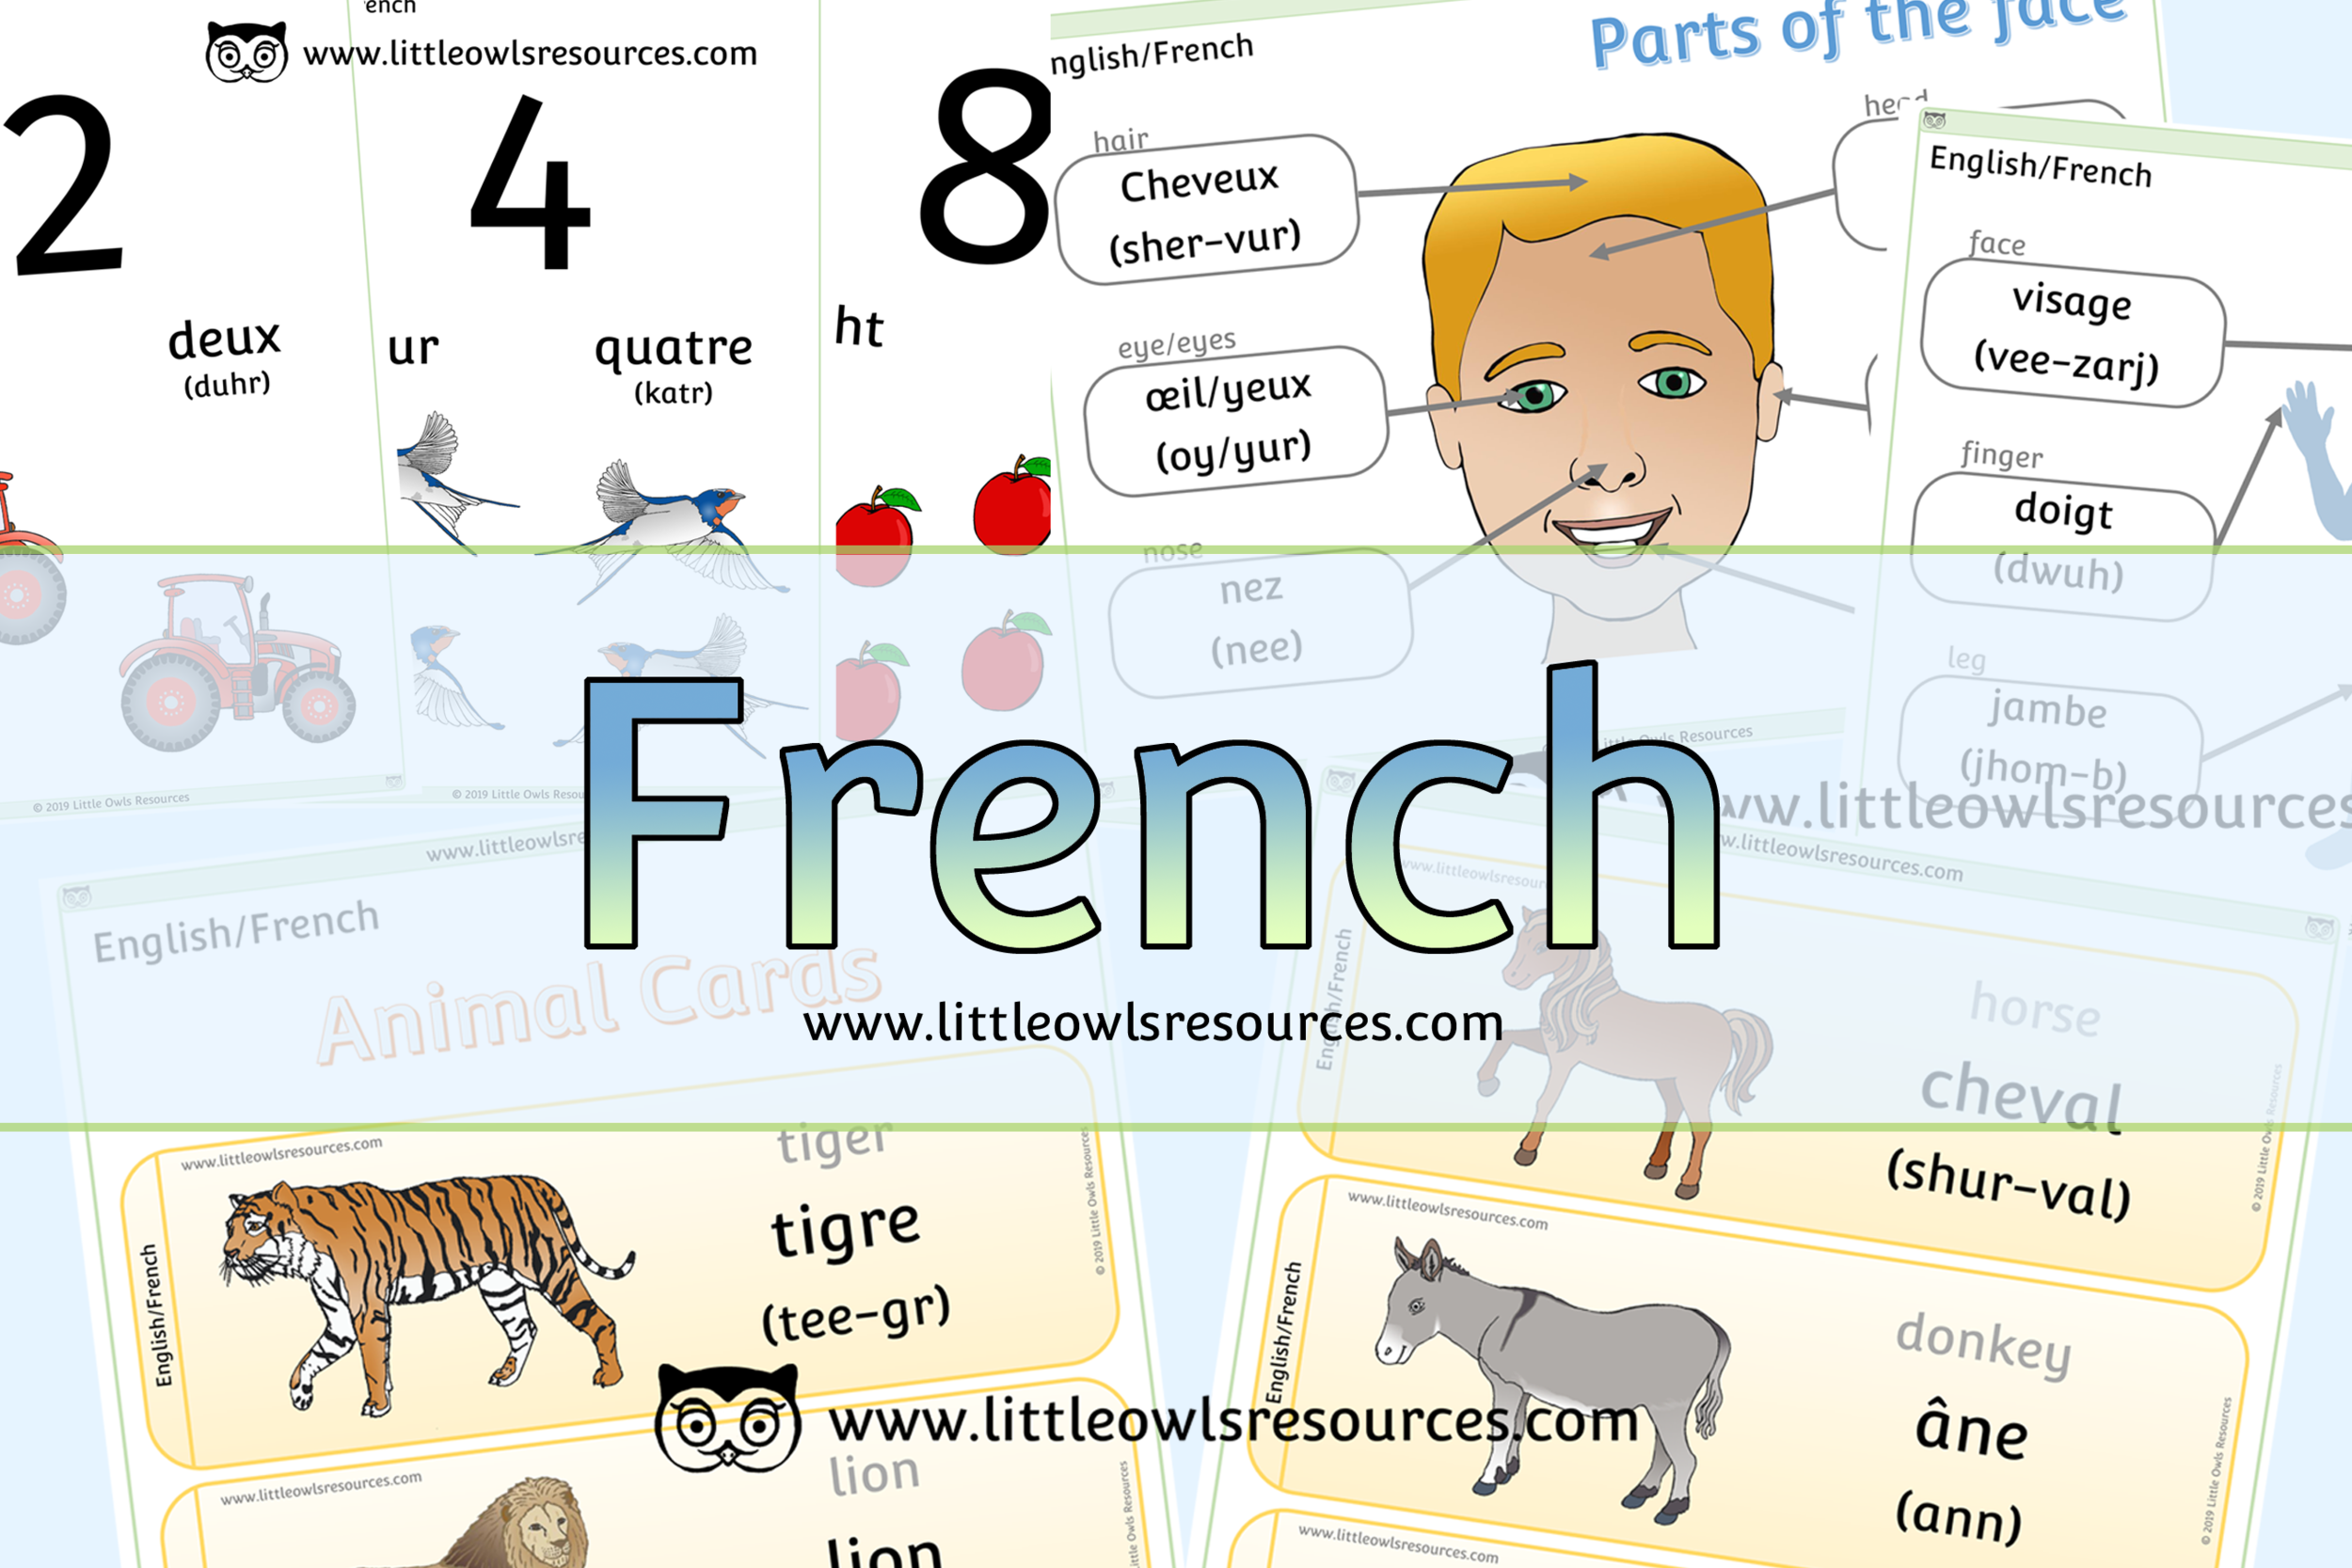 French/English Dual Language Resources